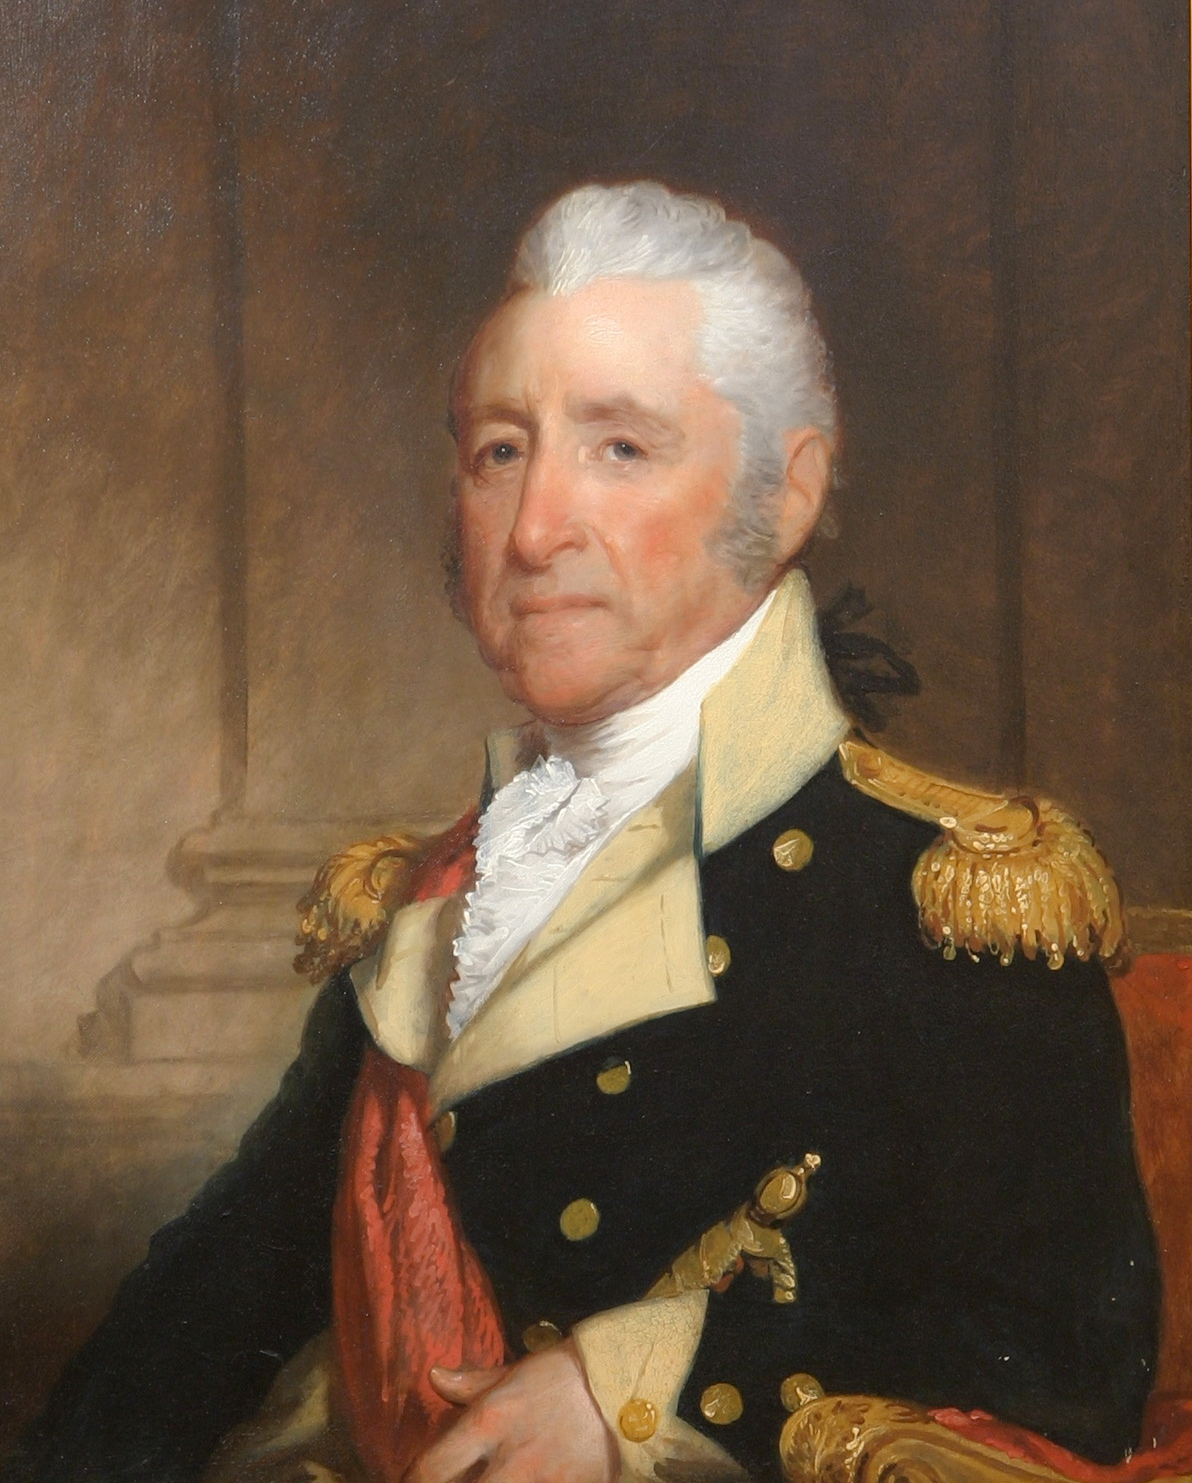 https://i0.wp.com/upload.wikimedia.org/wikipedia/commons/d/dc/Gilbert_Stuart%2C_Govenor_John_Brooks%2C_c._1820%2C_HAA.jpg